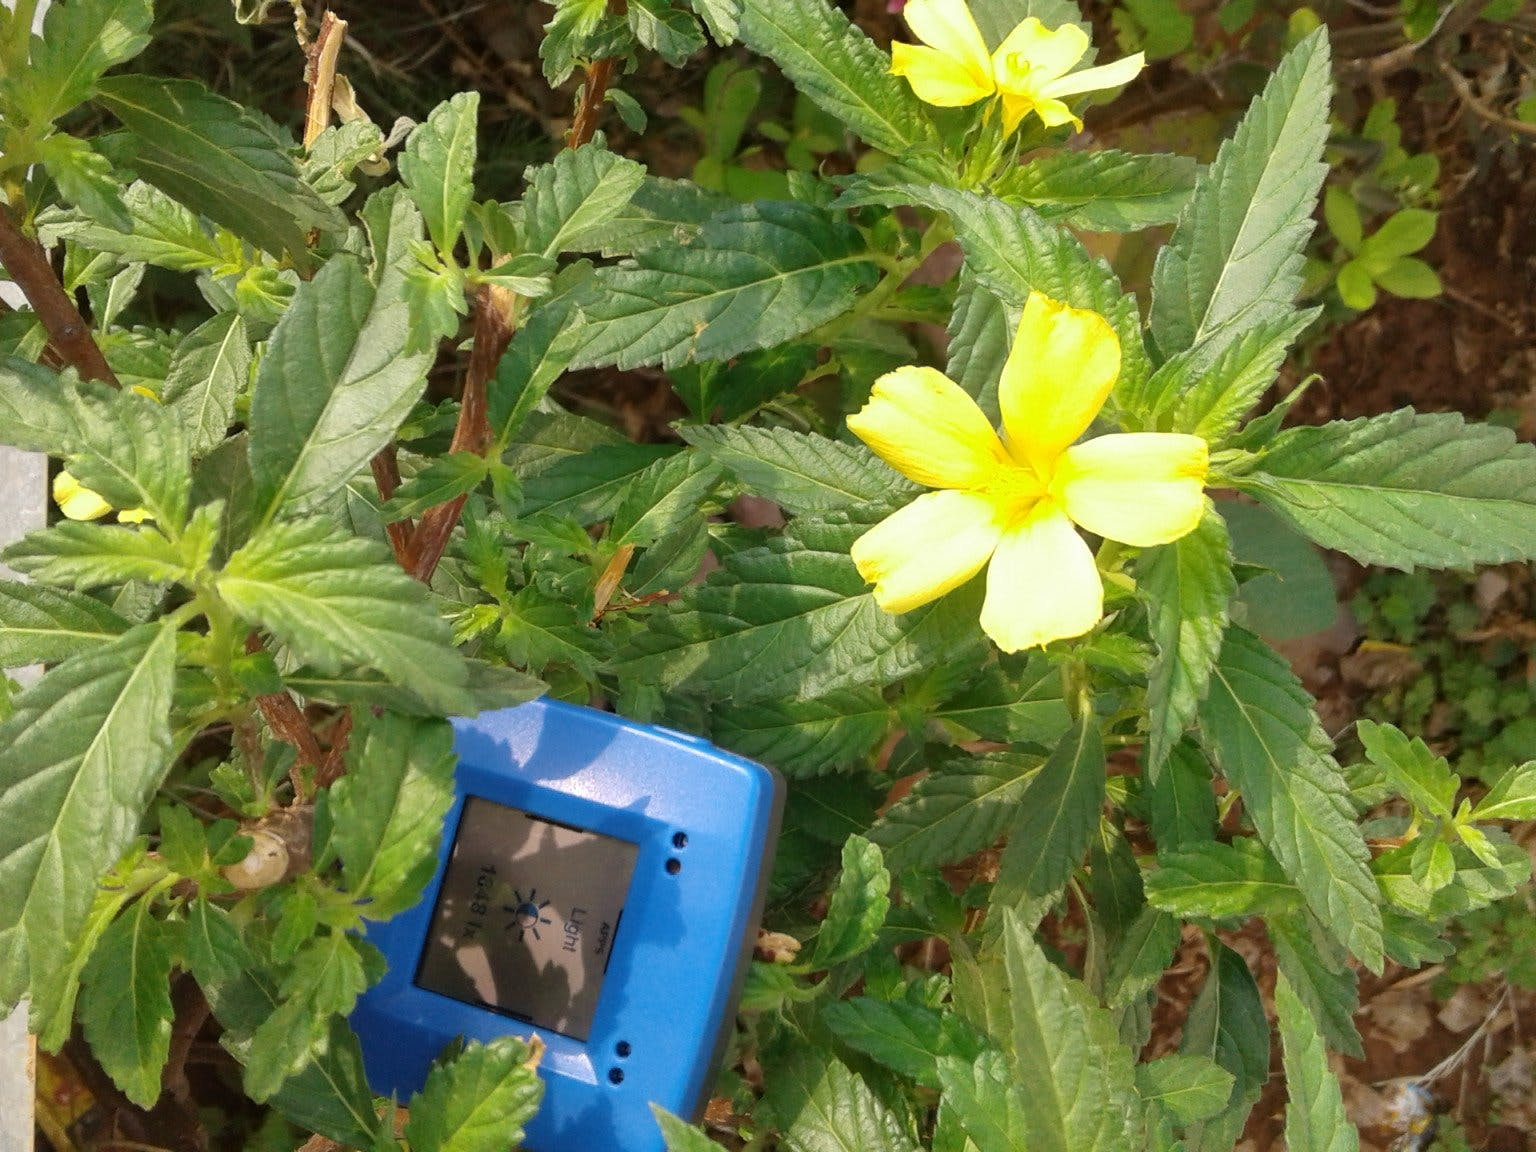 Horticulture environment sensing device